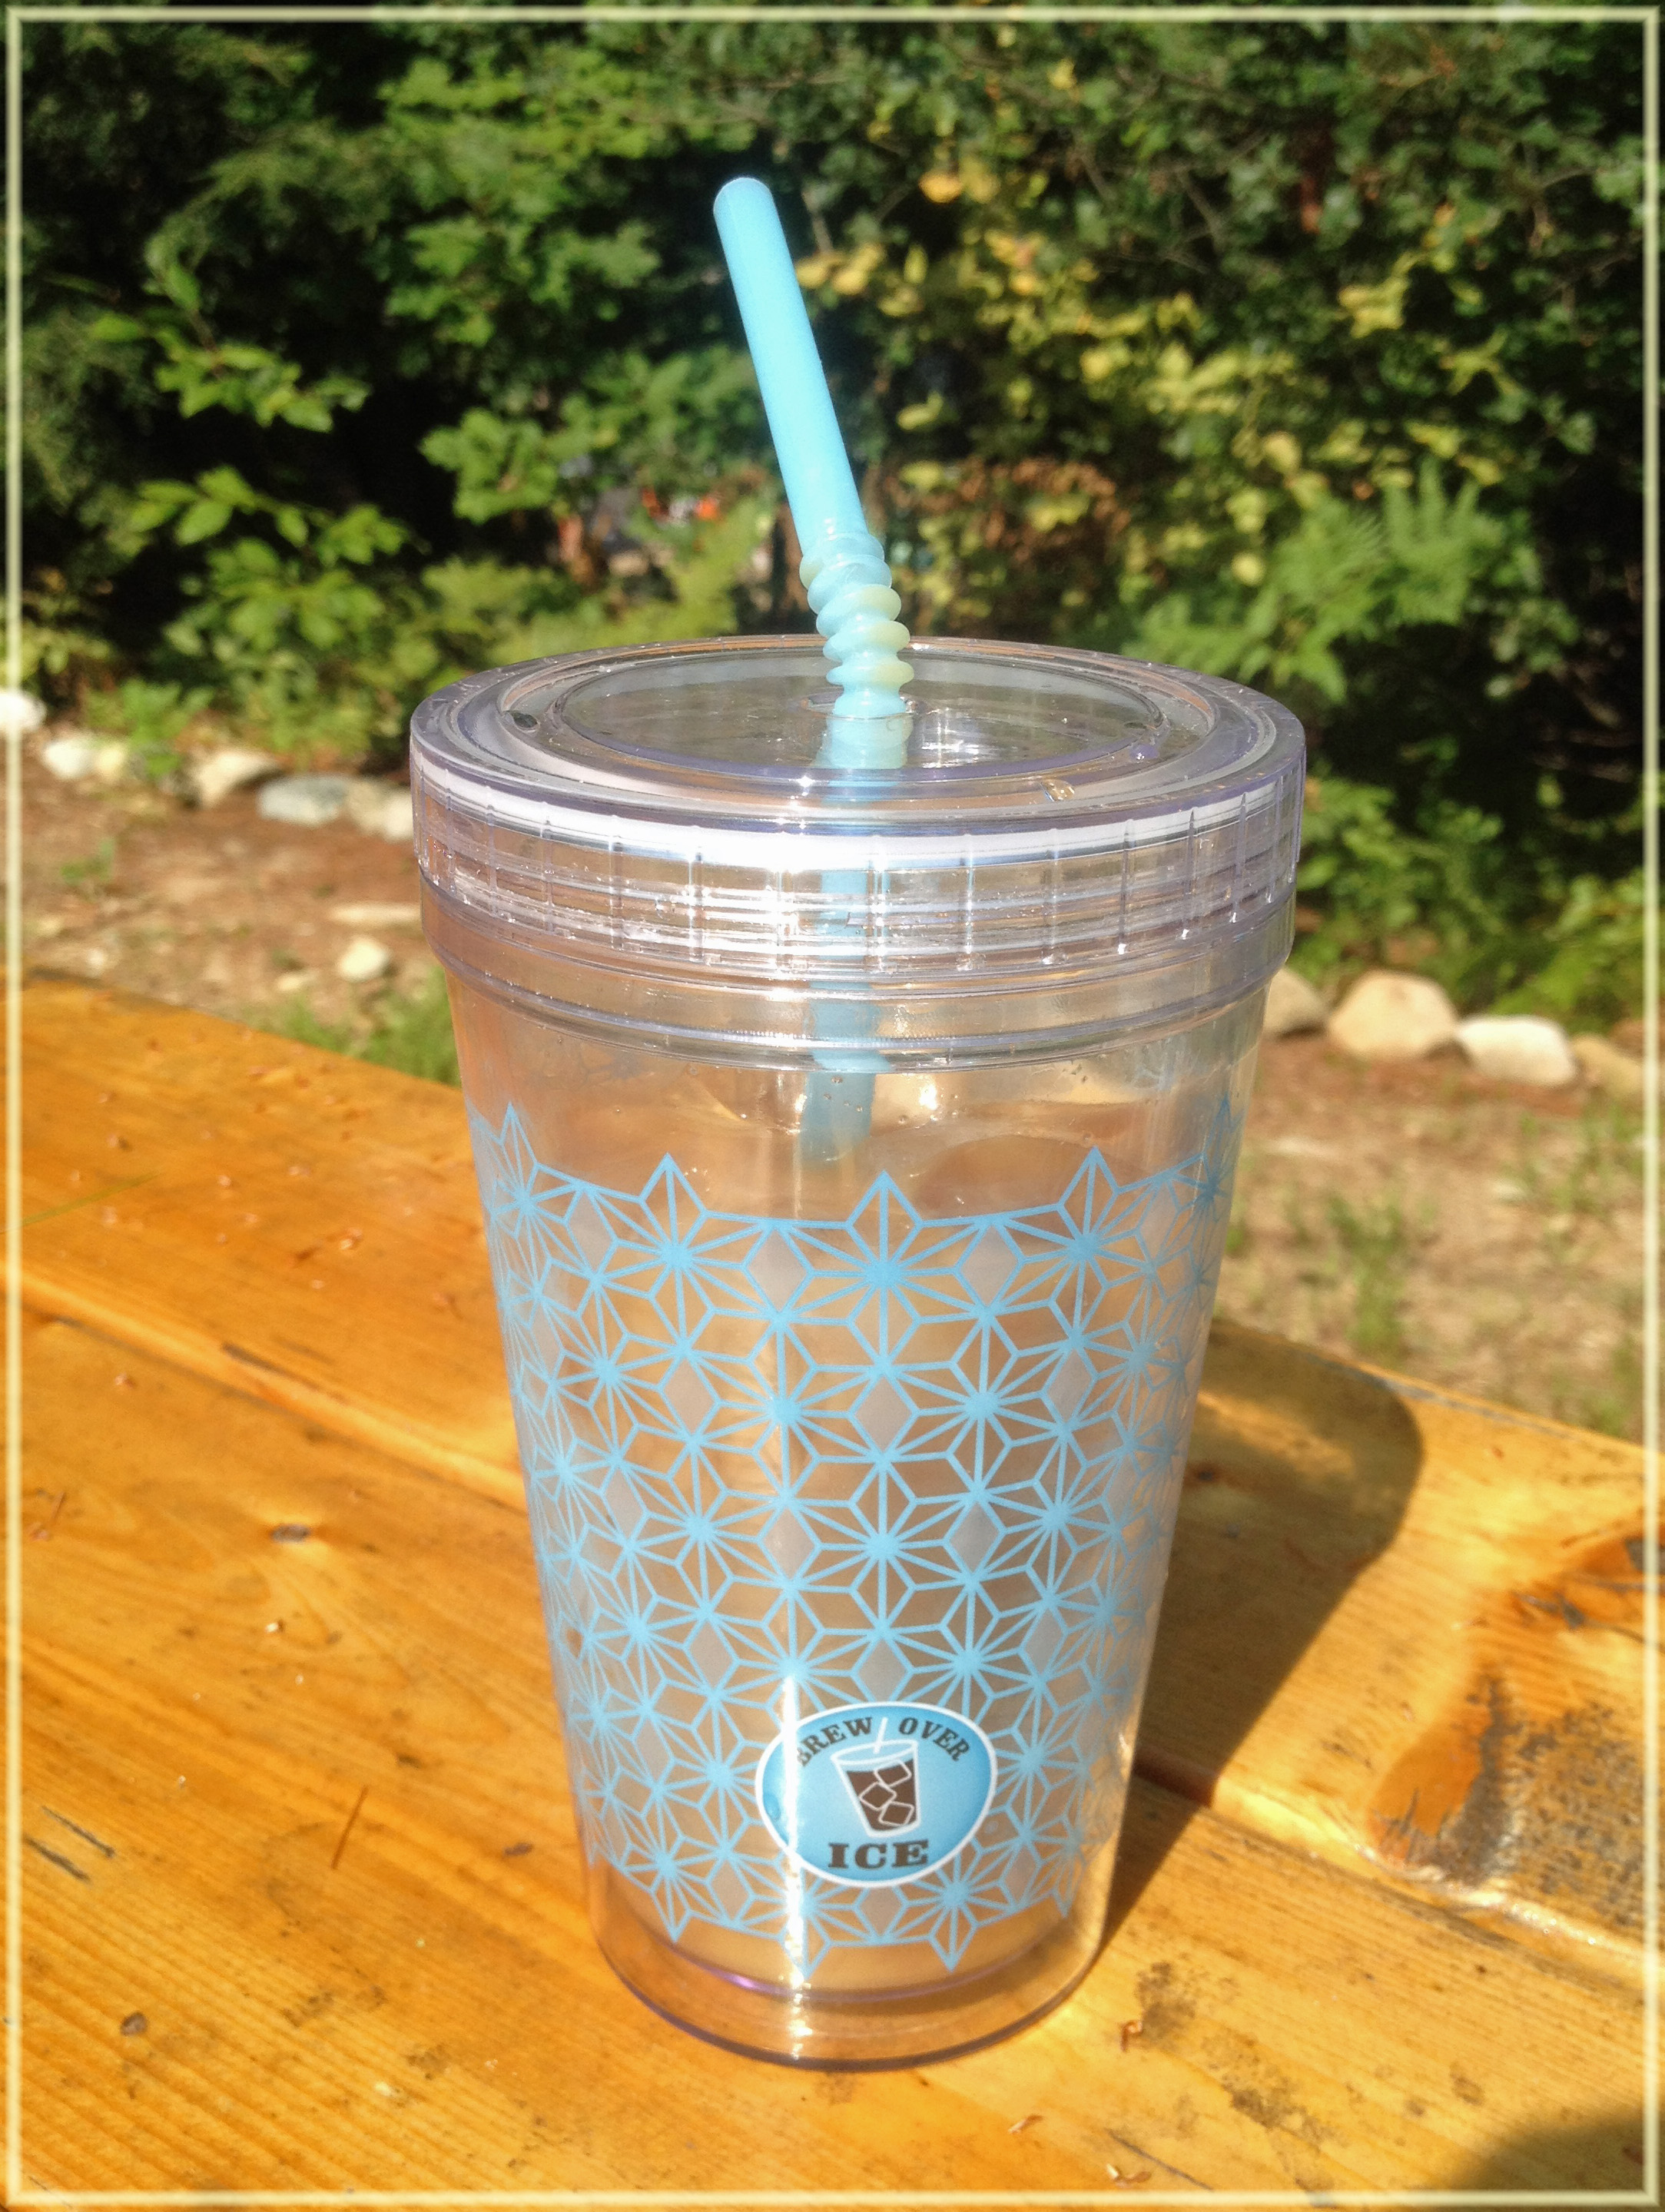 Keurig Coffee Maker Not Filling Cup All The Way : Brew Over Ice Review & Prize Pack Giveaway #LoveBrewOverIce - Mommy s Fabulous Finds